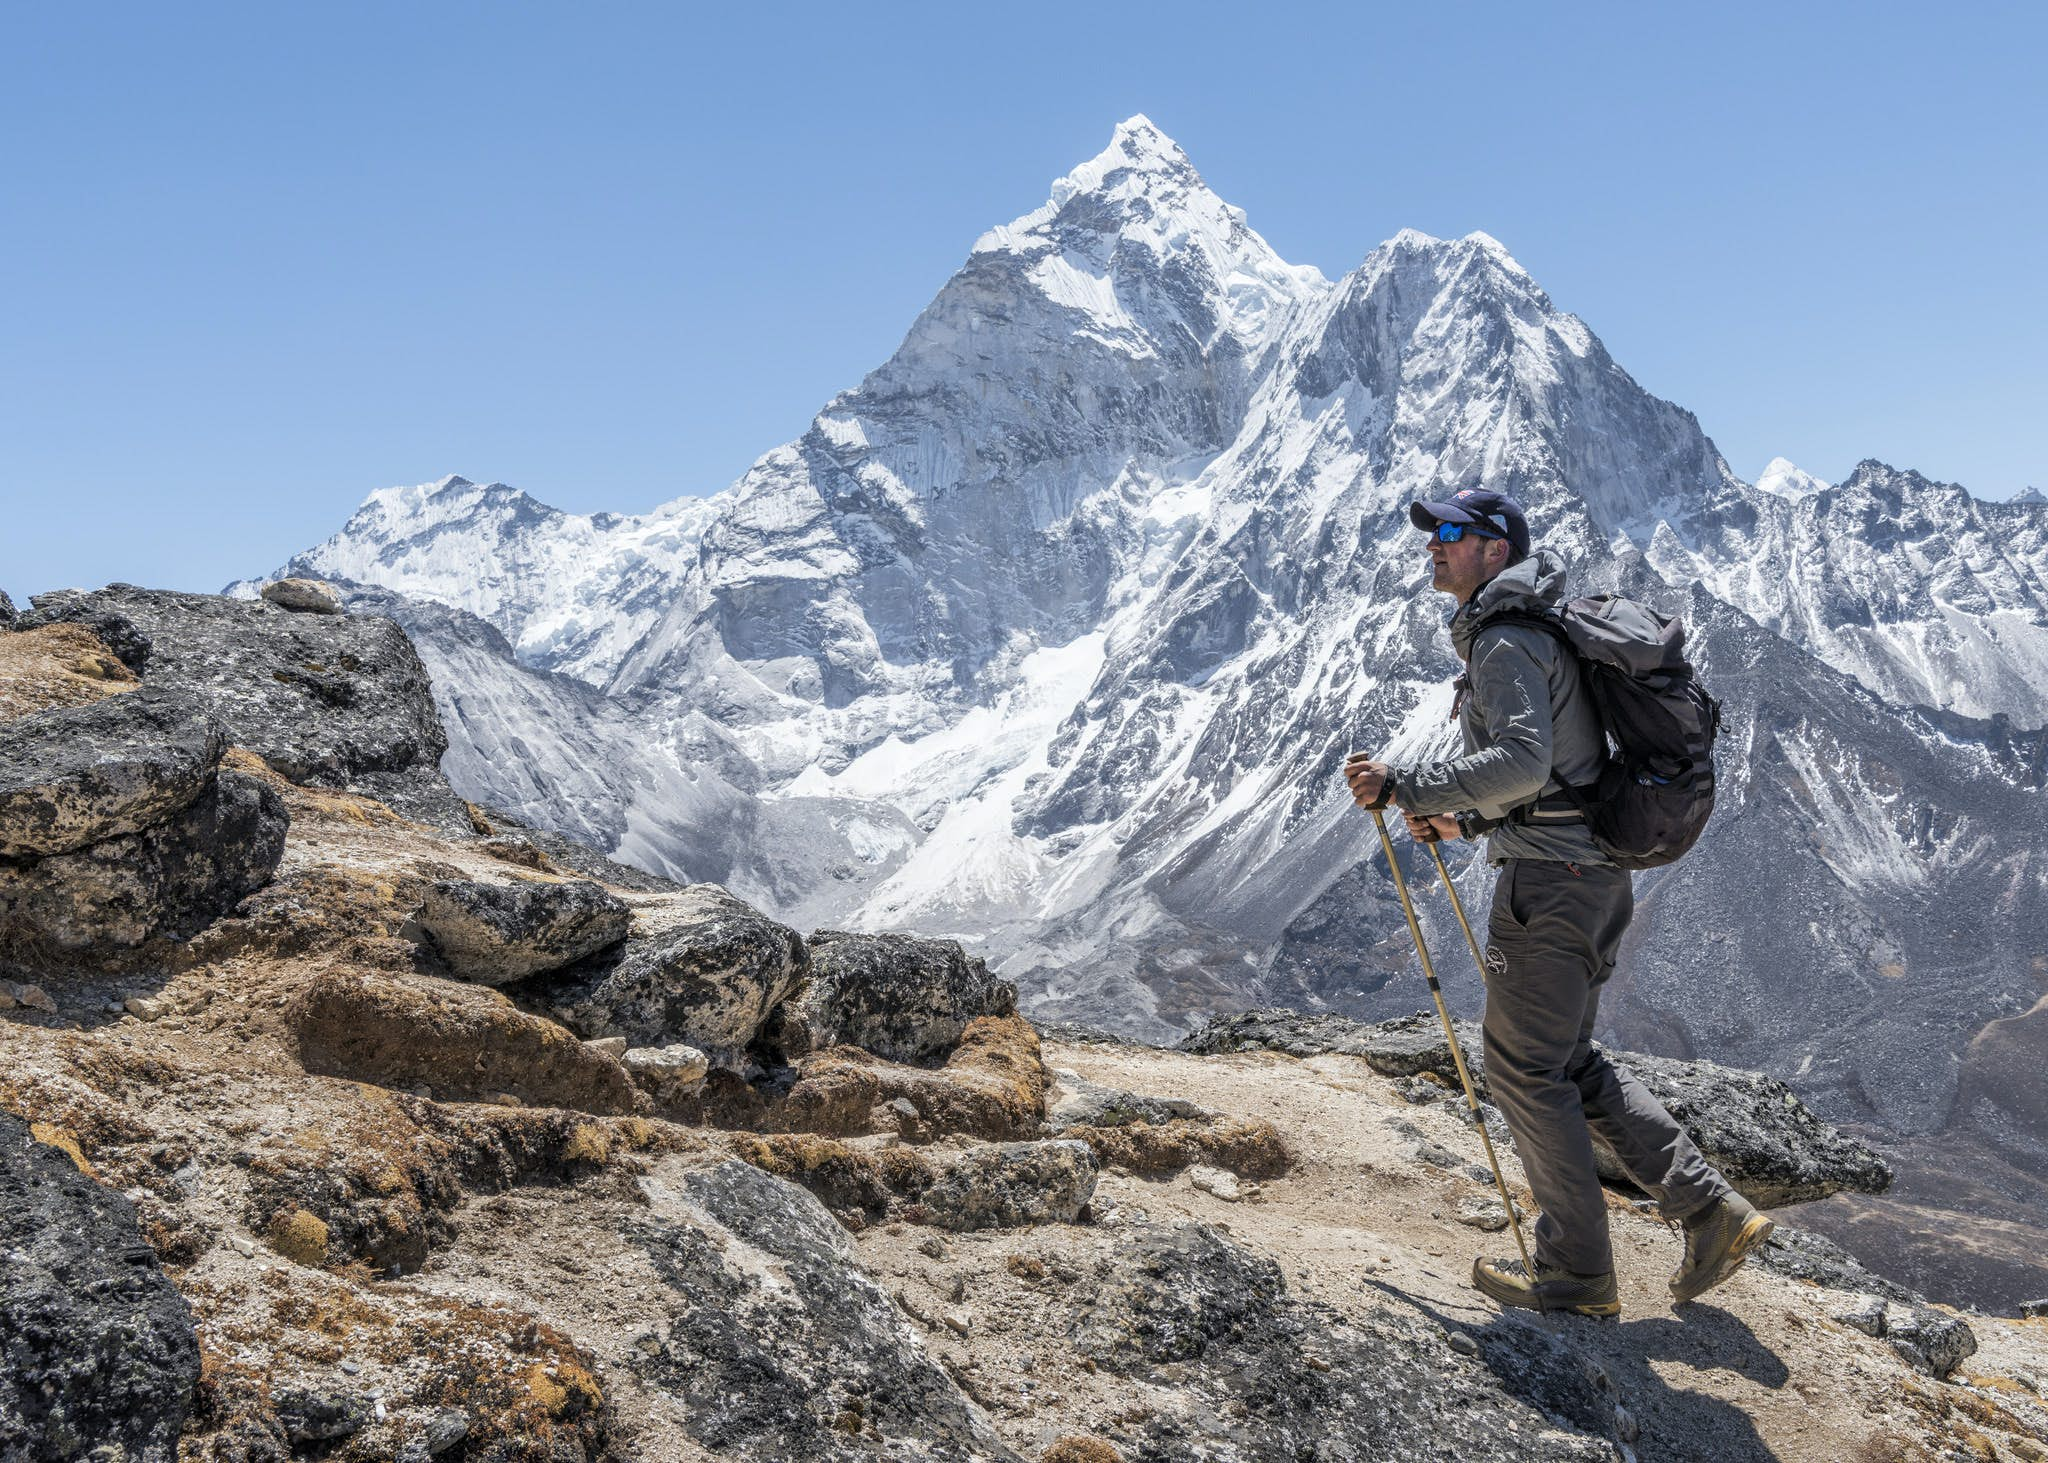 I Trekked to Everest Base Camp and I wouldn't do it again